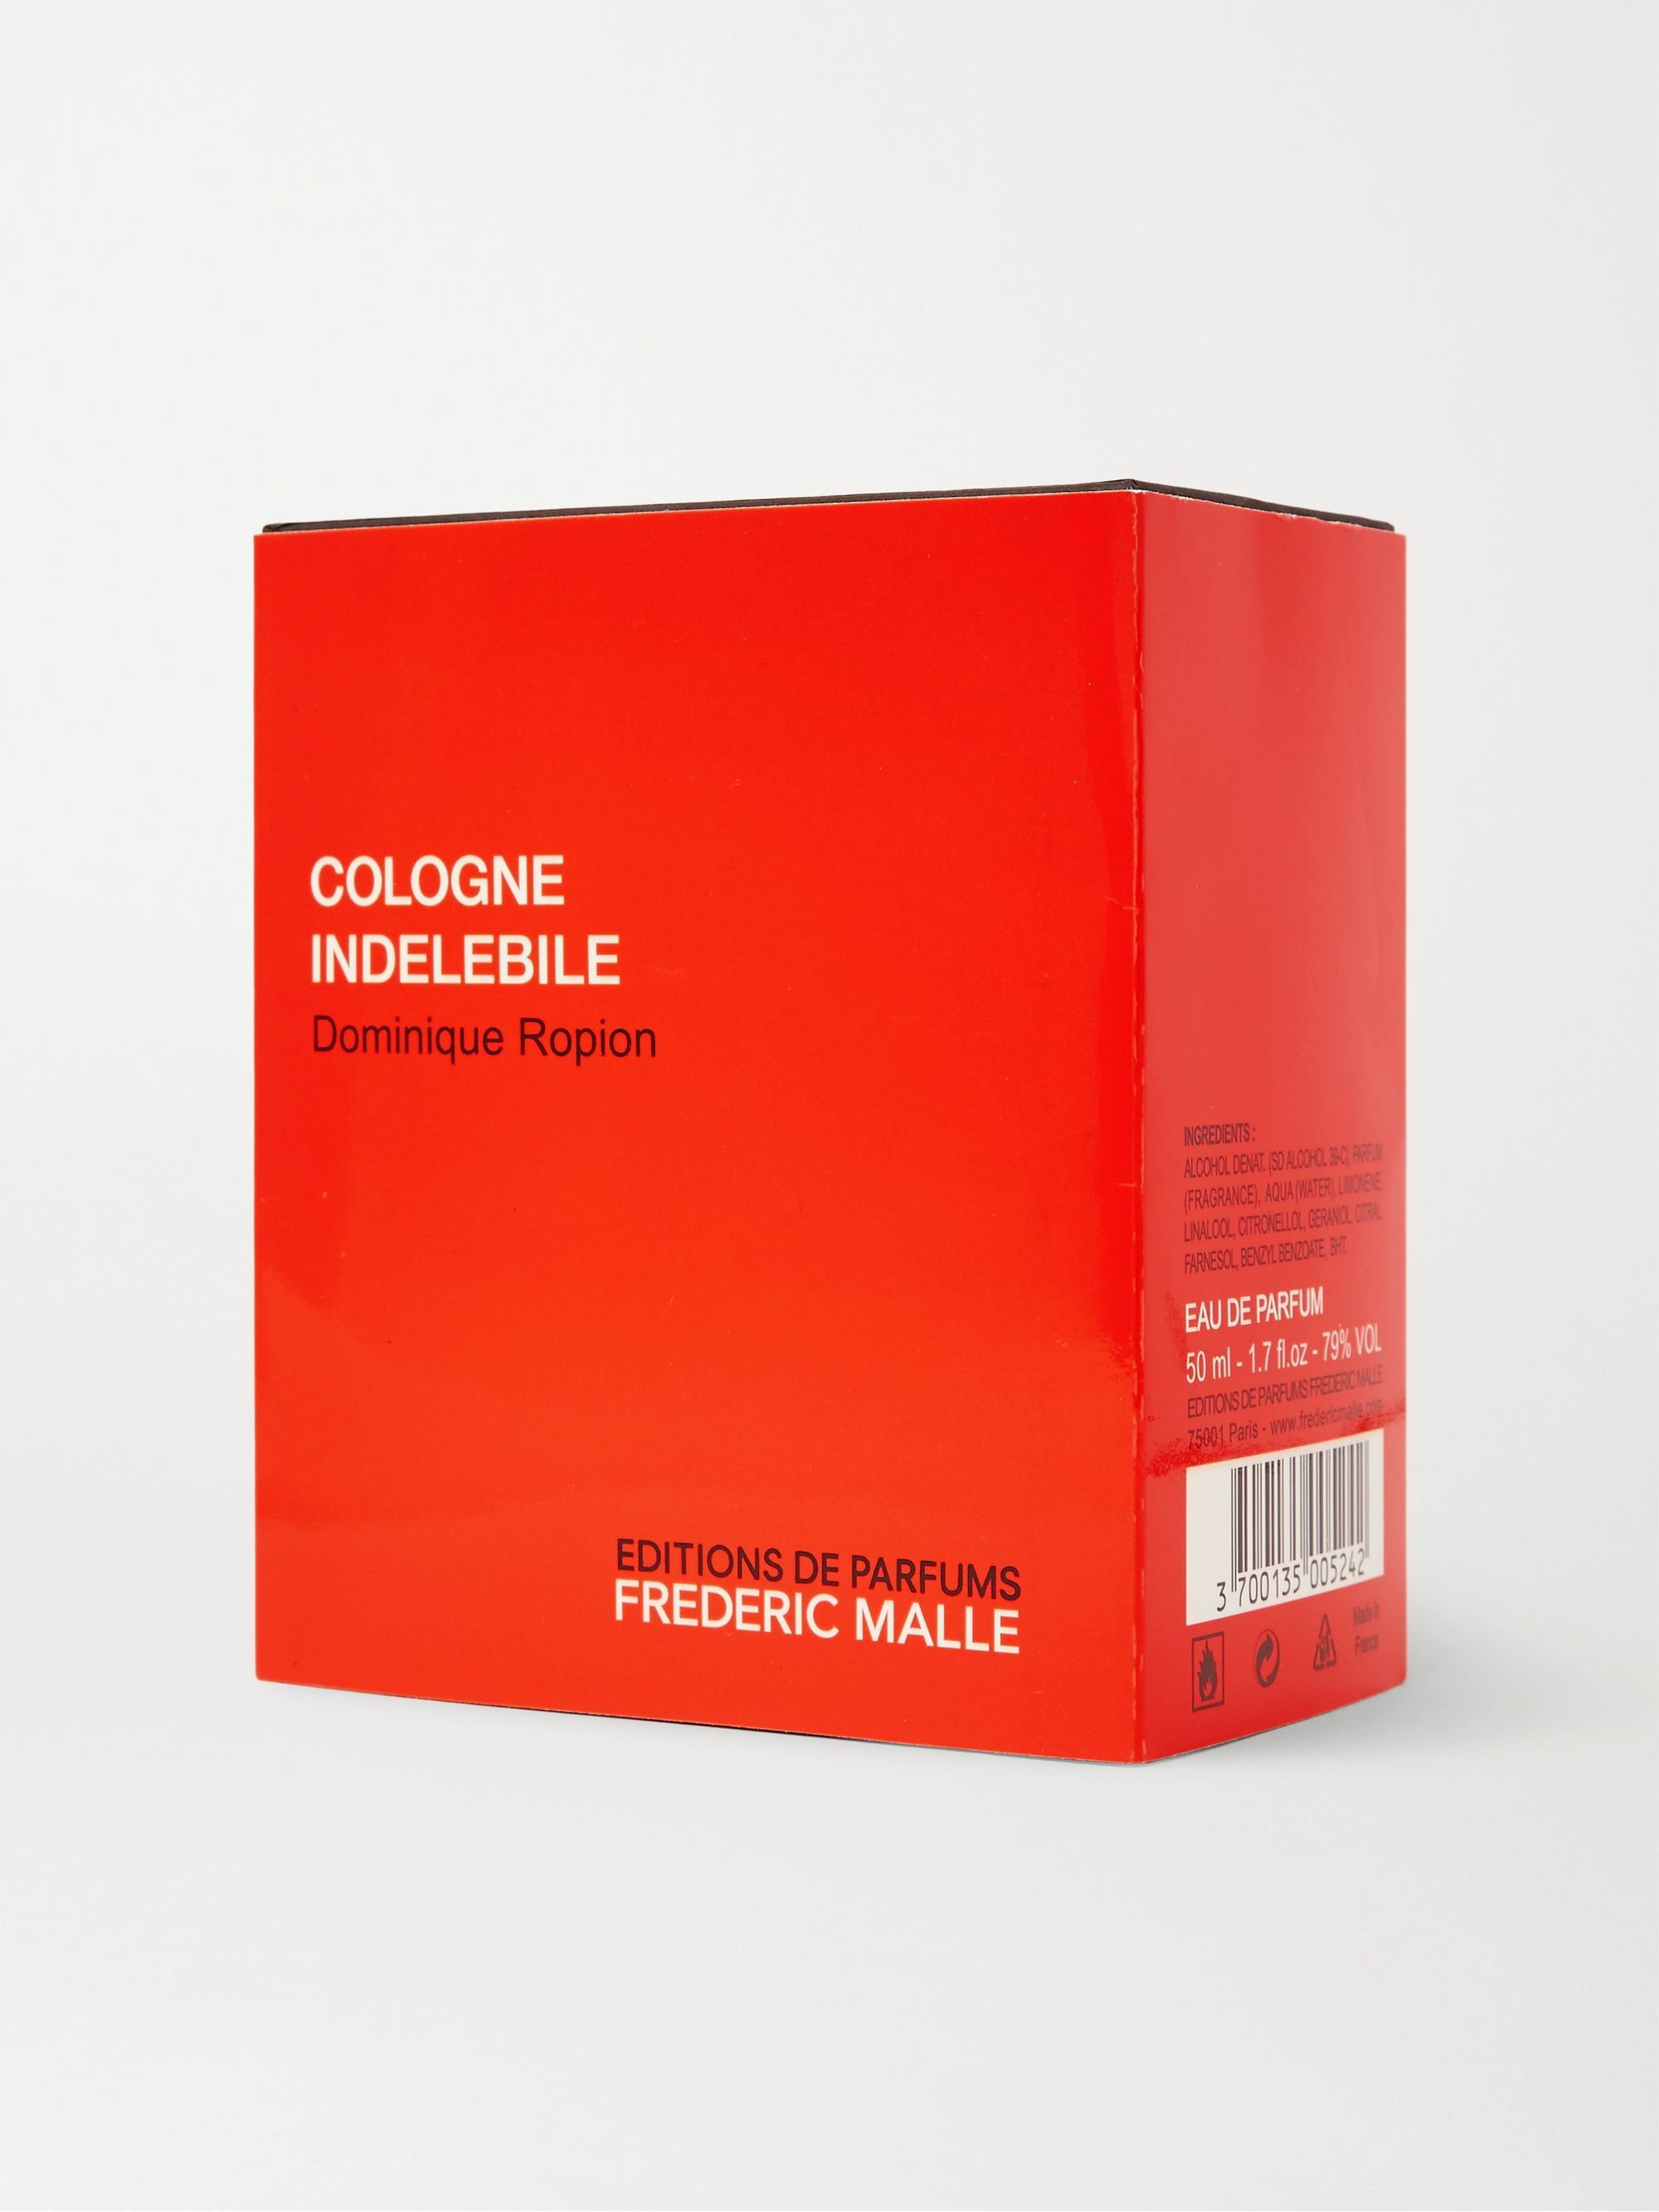 Frederic Malle Cologne Indélébile Eau de Parfum - Orange Blossom Absolute & White Musk, 50ml